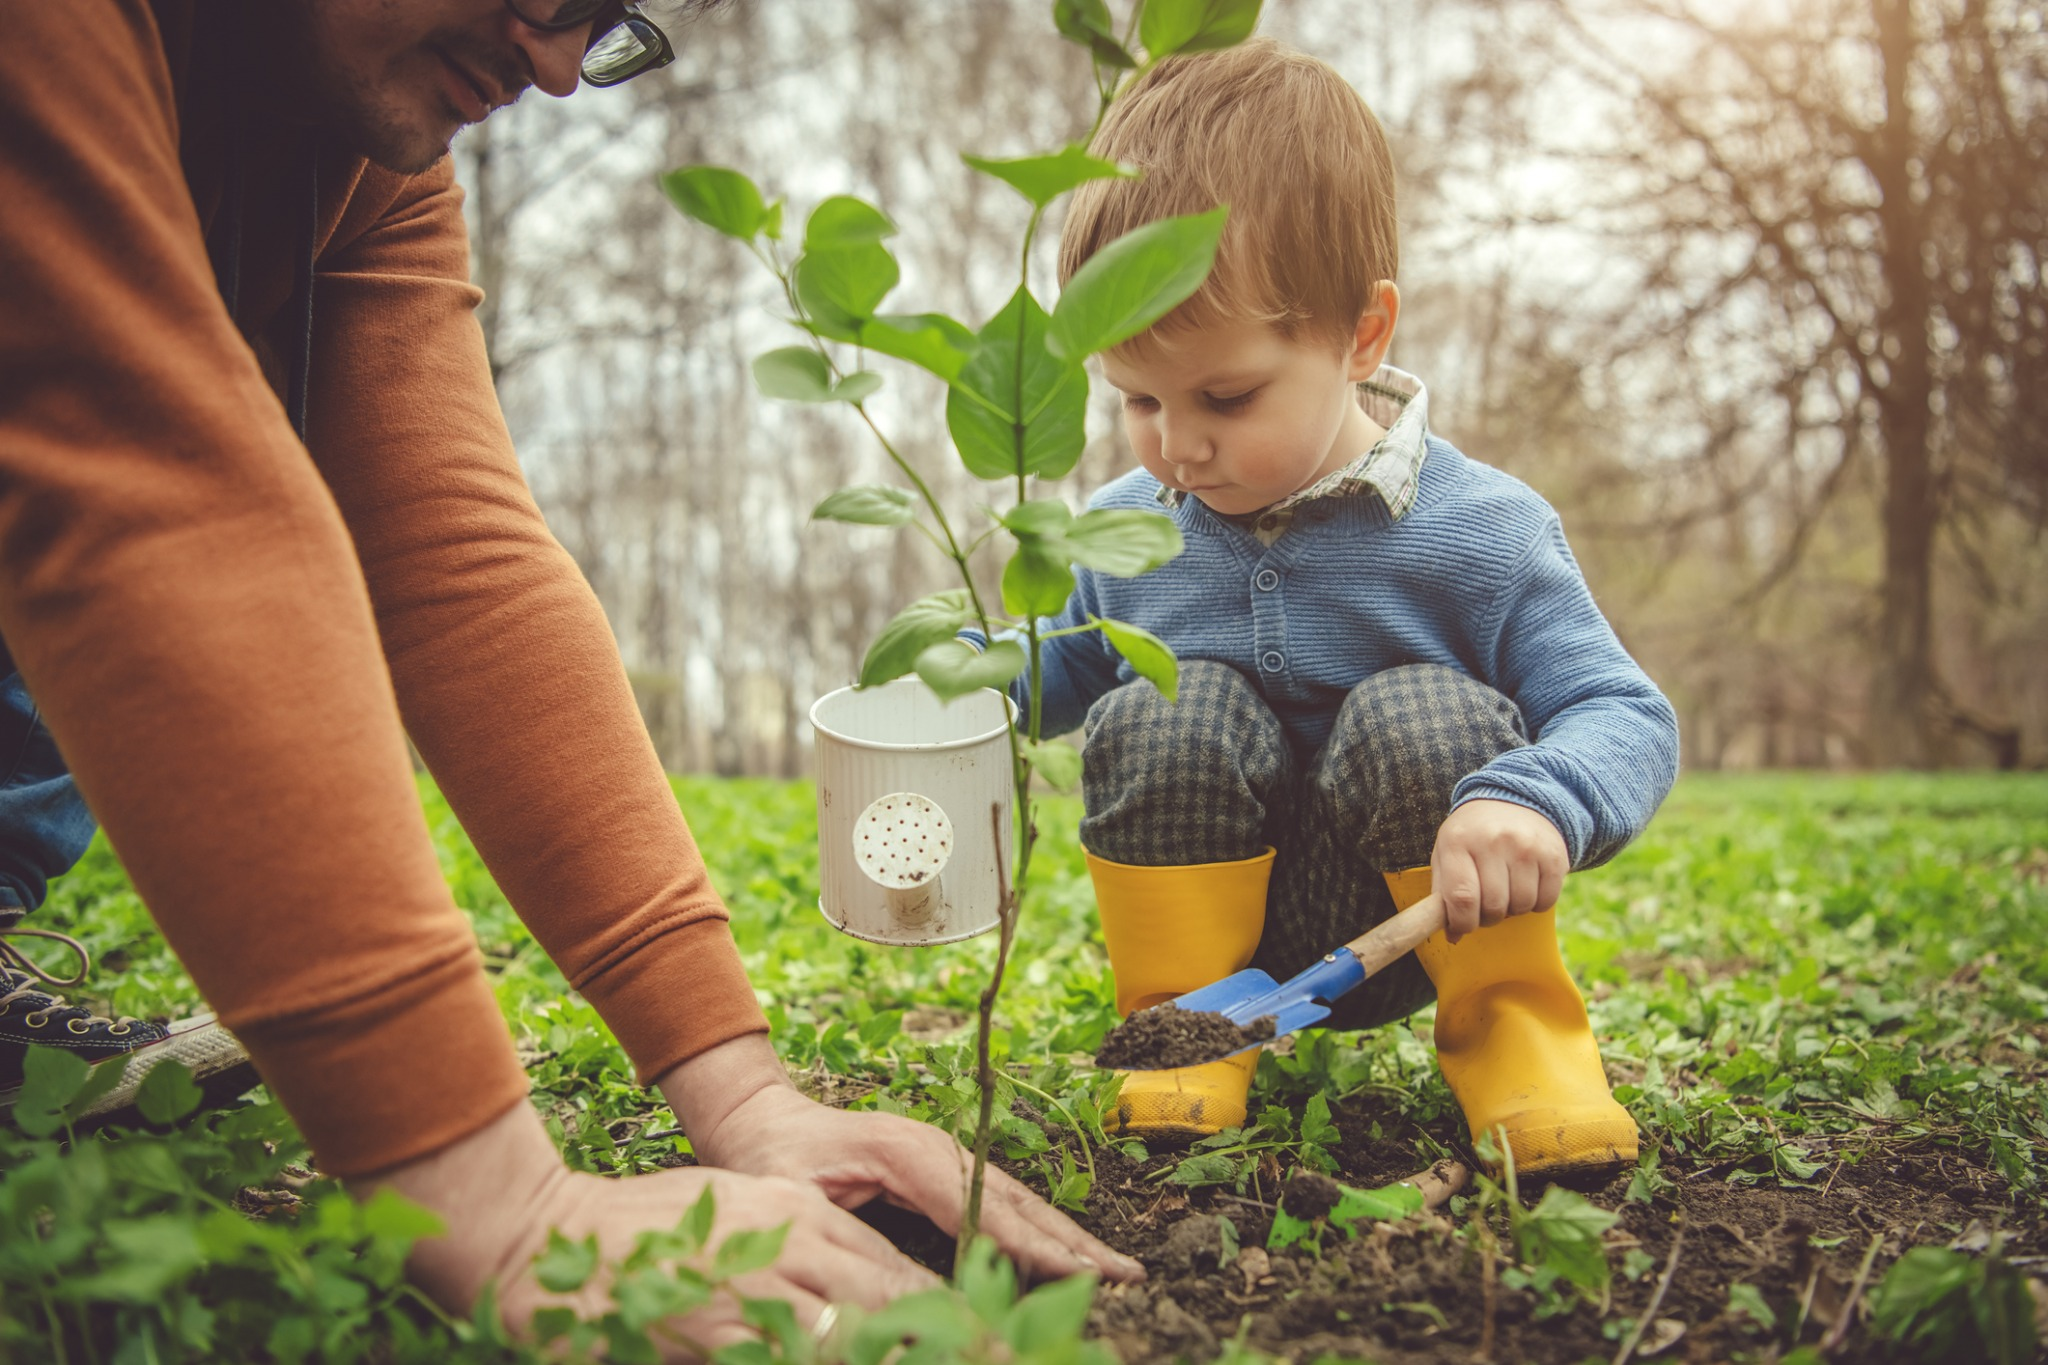 Boy in yellow boots watering sapling.